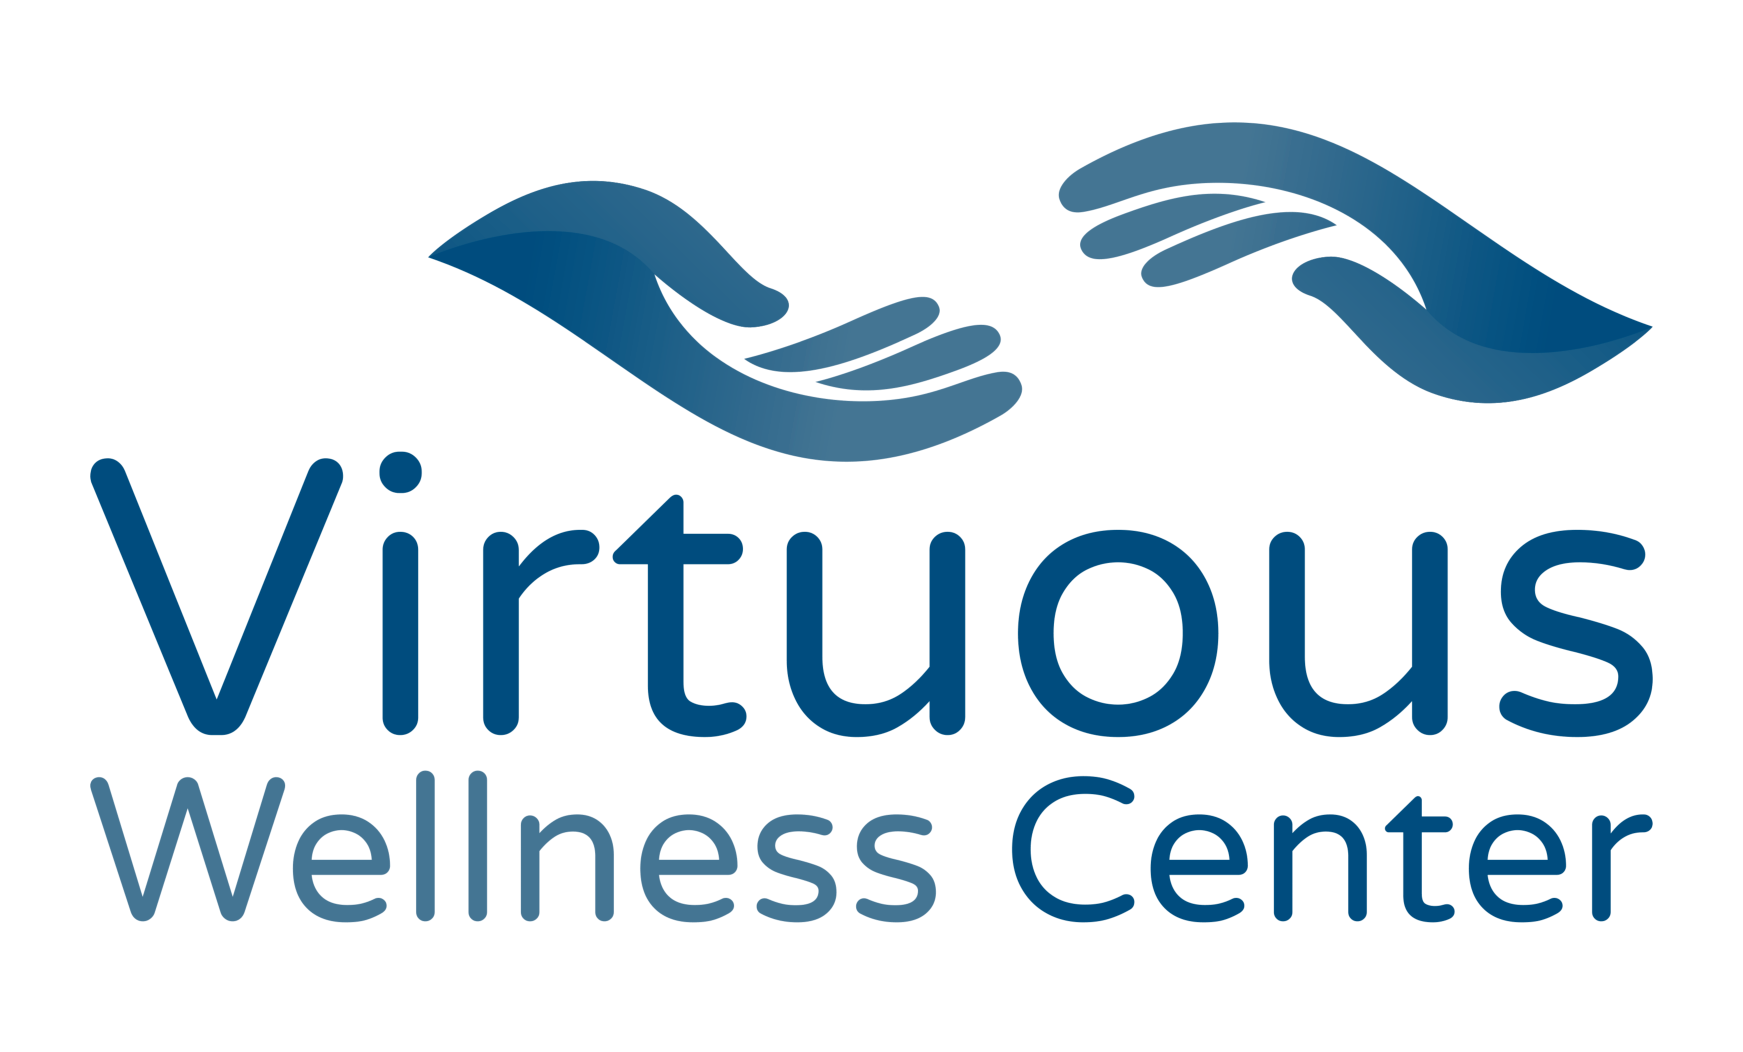 Virtuous Wellness Center logo